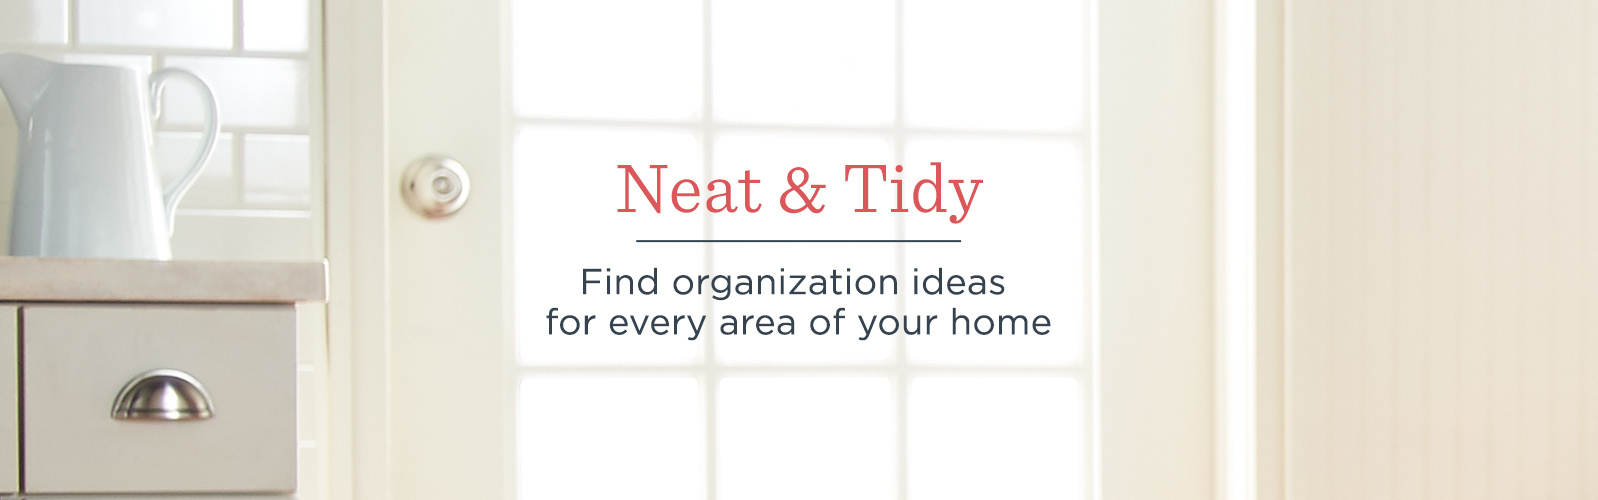 Neat & Tidy. Find organization ideas for every area of your home